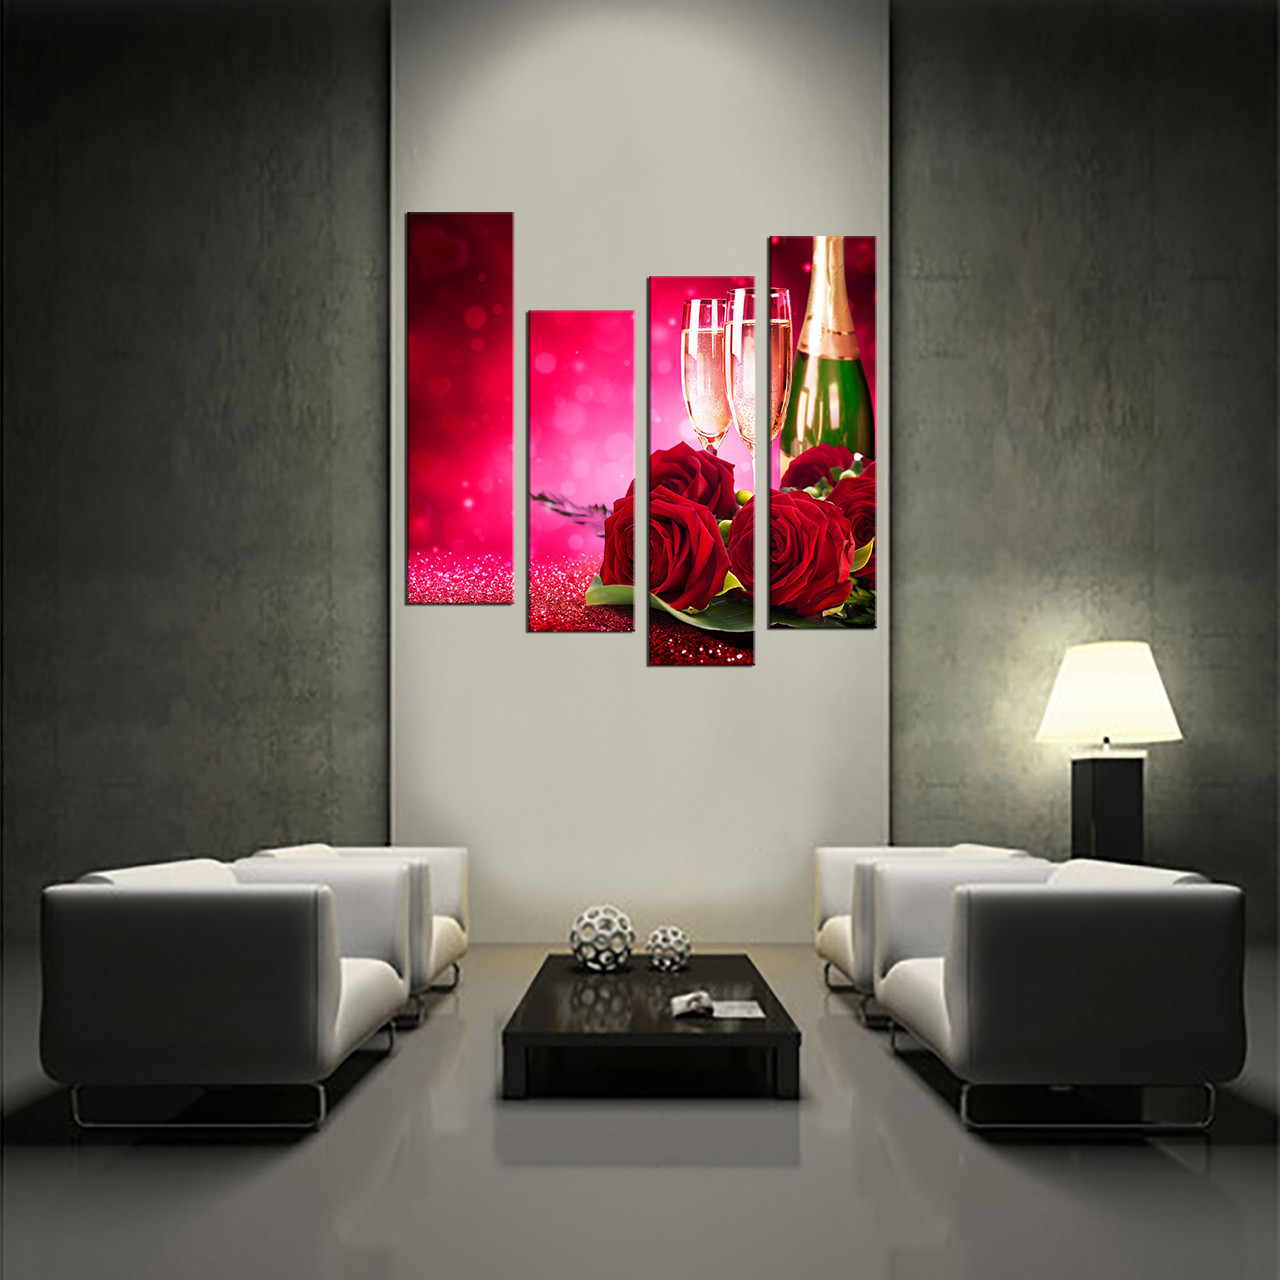 3 Piece Purple Cherry Blossom Muti Panel Abstract Modern: 4 Piece Canvas Photography, Red Huge Canvas Print, Red